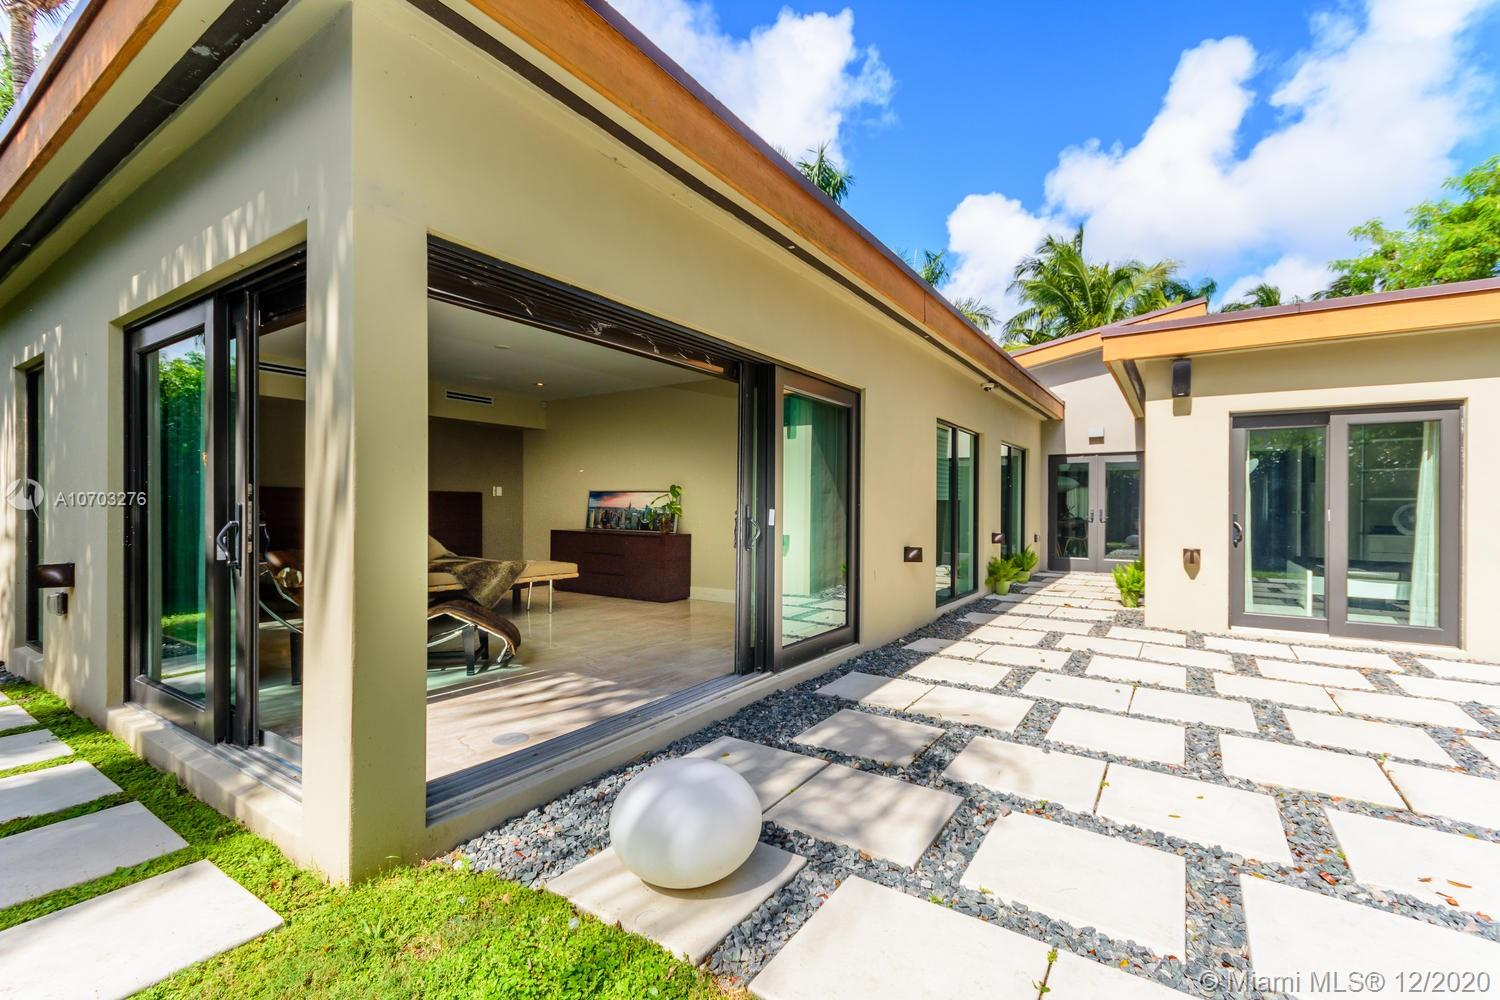 Built new from the slab up in 2014 with the highest quality materials.  Miele appliances, Energy Star Rated 3-zone air conditioning, large commercial-grade impact windows.  Enjoy a 1,000 SF master bedroom!! Possible fourth bedroom. Where better to enjoy the endless summer of South Beach then this chic Venetian Islands Bungalow. Perfect for the stylish urbanite who want to enjoy every moment, or the fun family who wants to make memories in this perfect home.